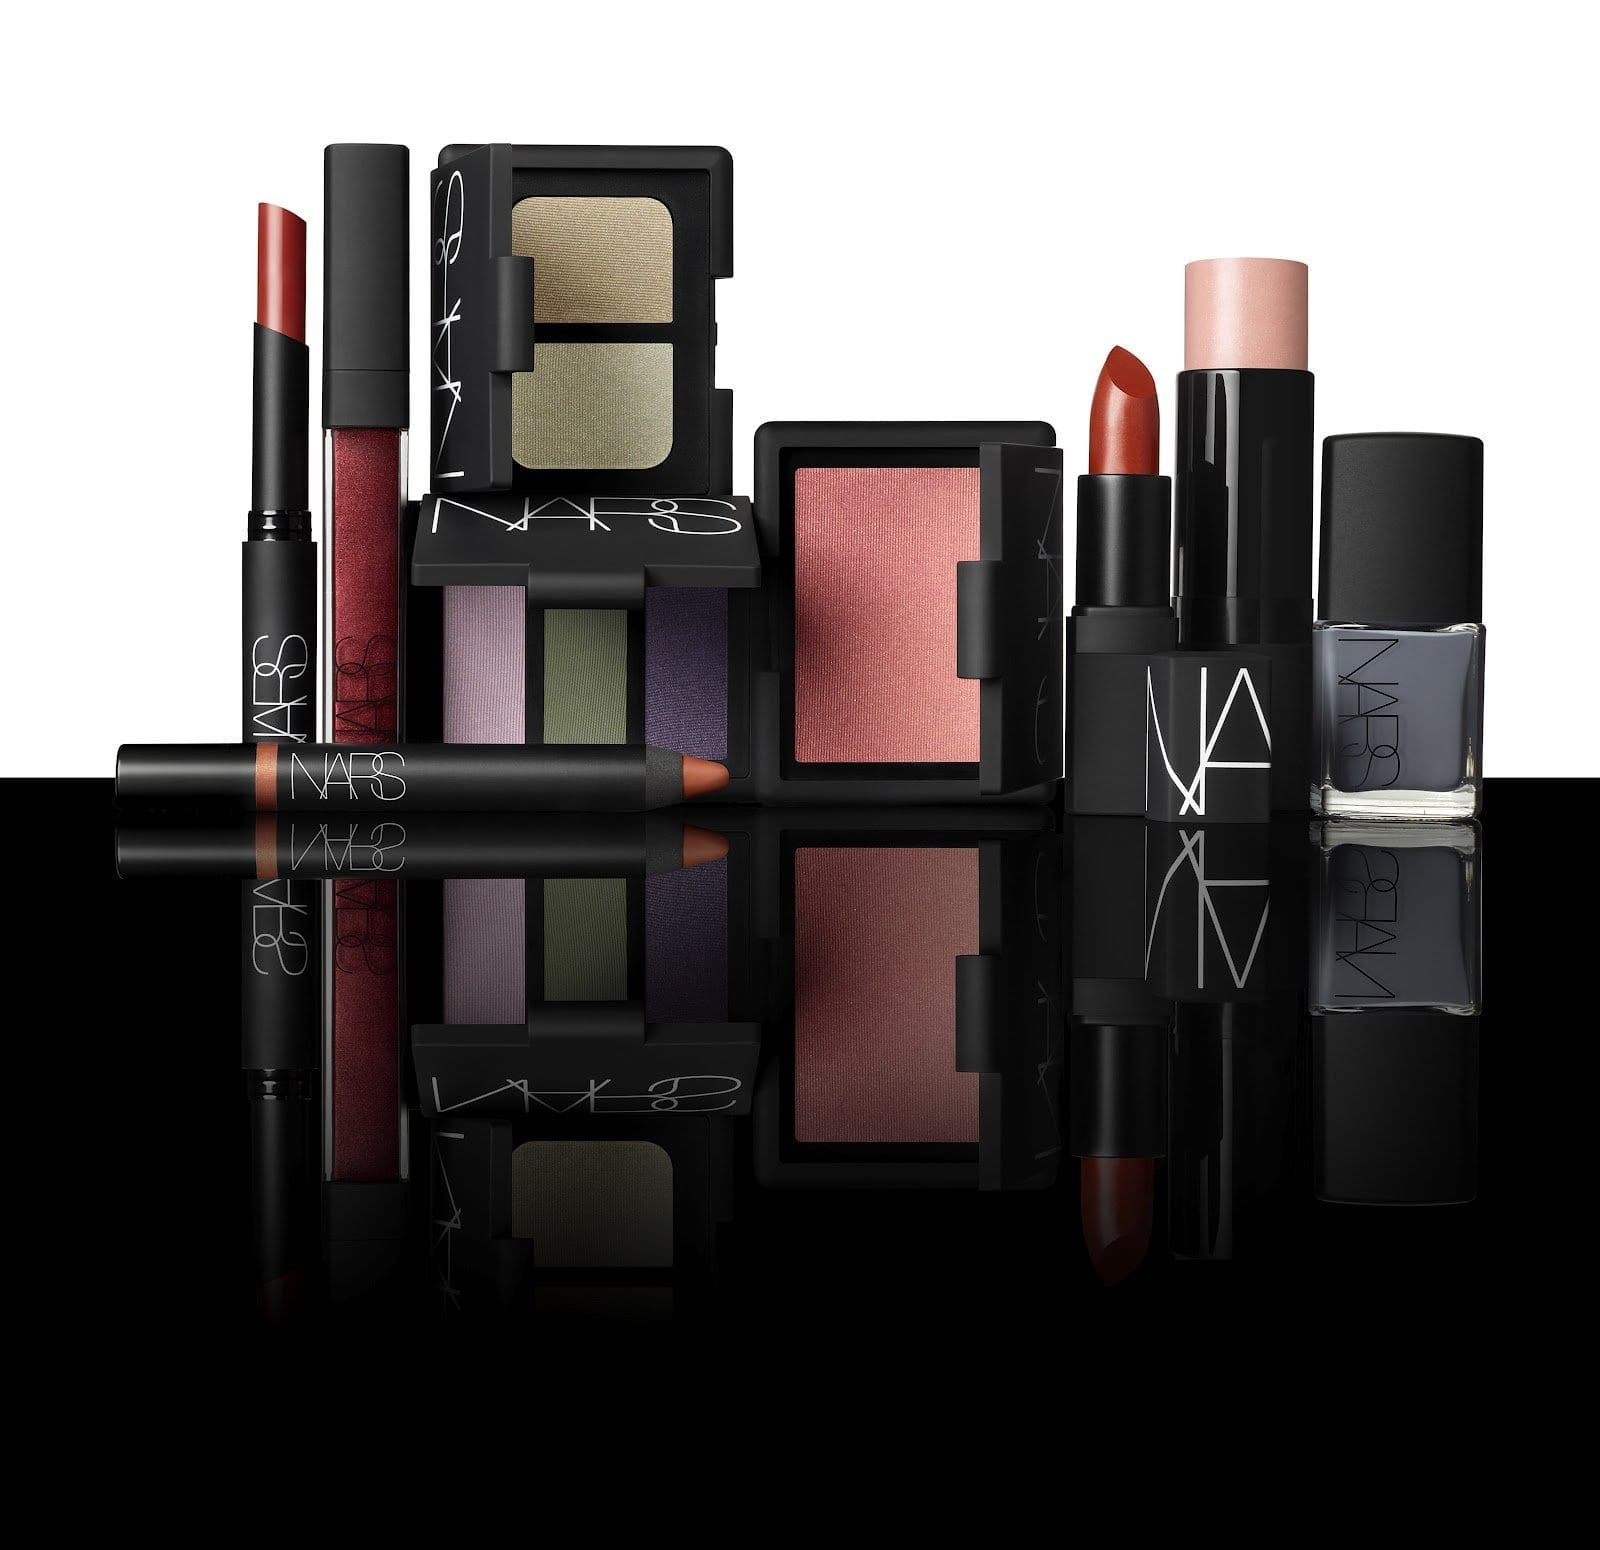 NARS-Fall-Group-Product-Shot-cropped-hi-res Top Cosmetic Brands 2018-10 Most Popular Beauty Brands List